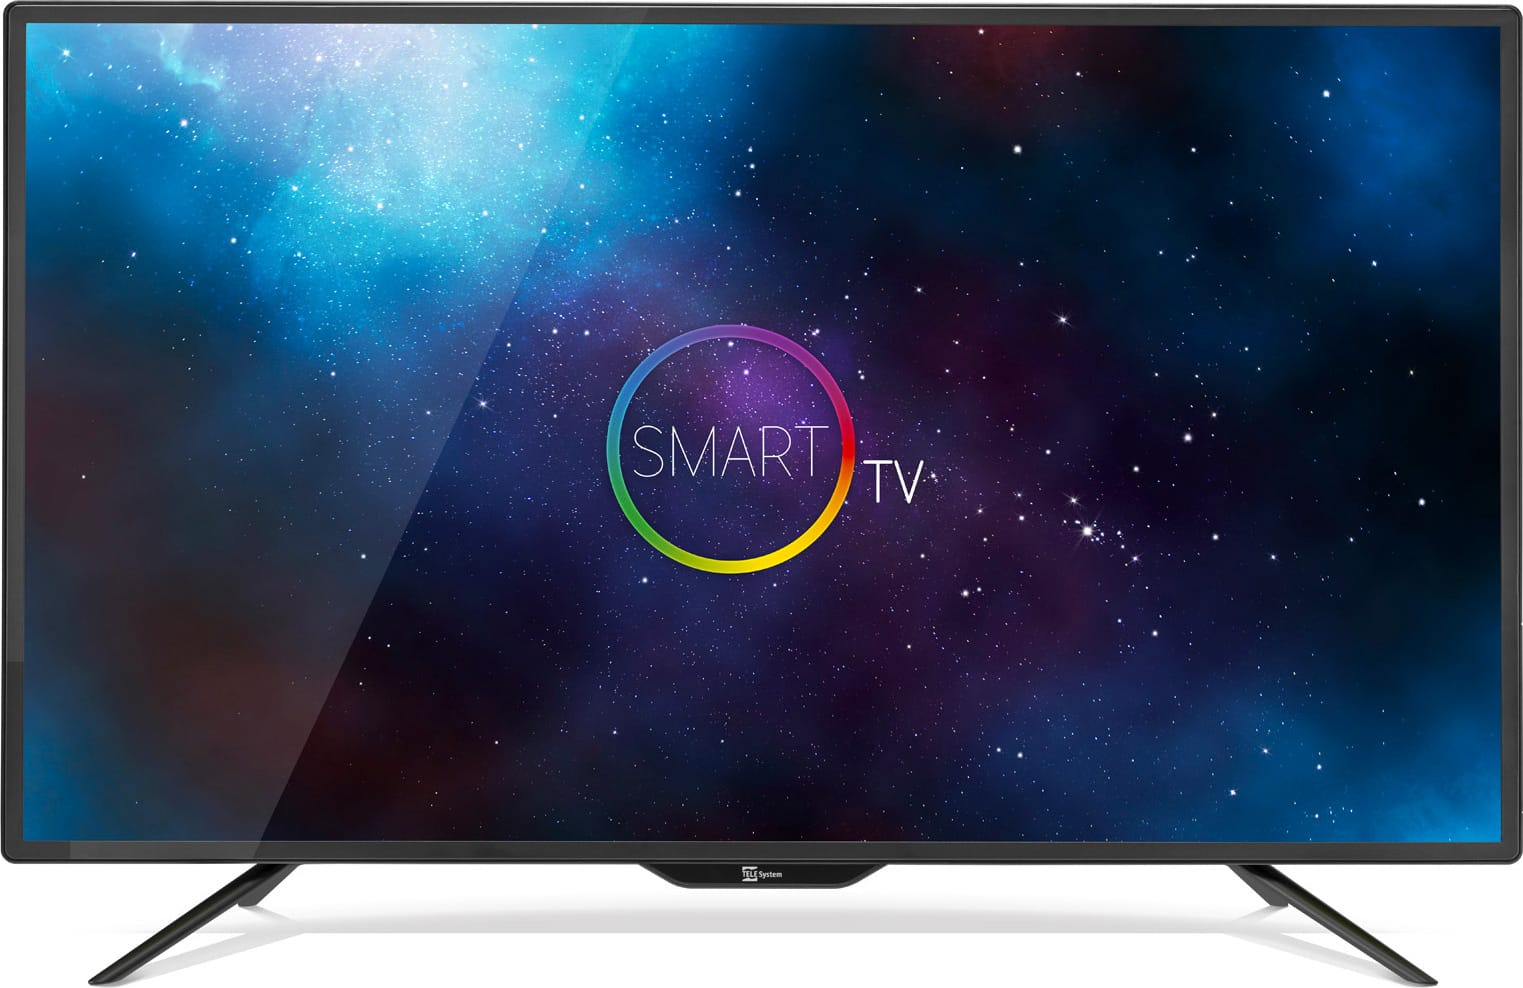 Tv Digitale Tv Led 40 Pollici Full Hd Digitale Terrestre Dvb T2 Dvb S2 Ci Smart Tv Internet Tv Timeshift Wifi Vga Usb Hdmi Smart 40 Led08 Garanzia Italia